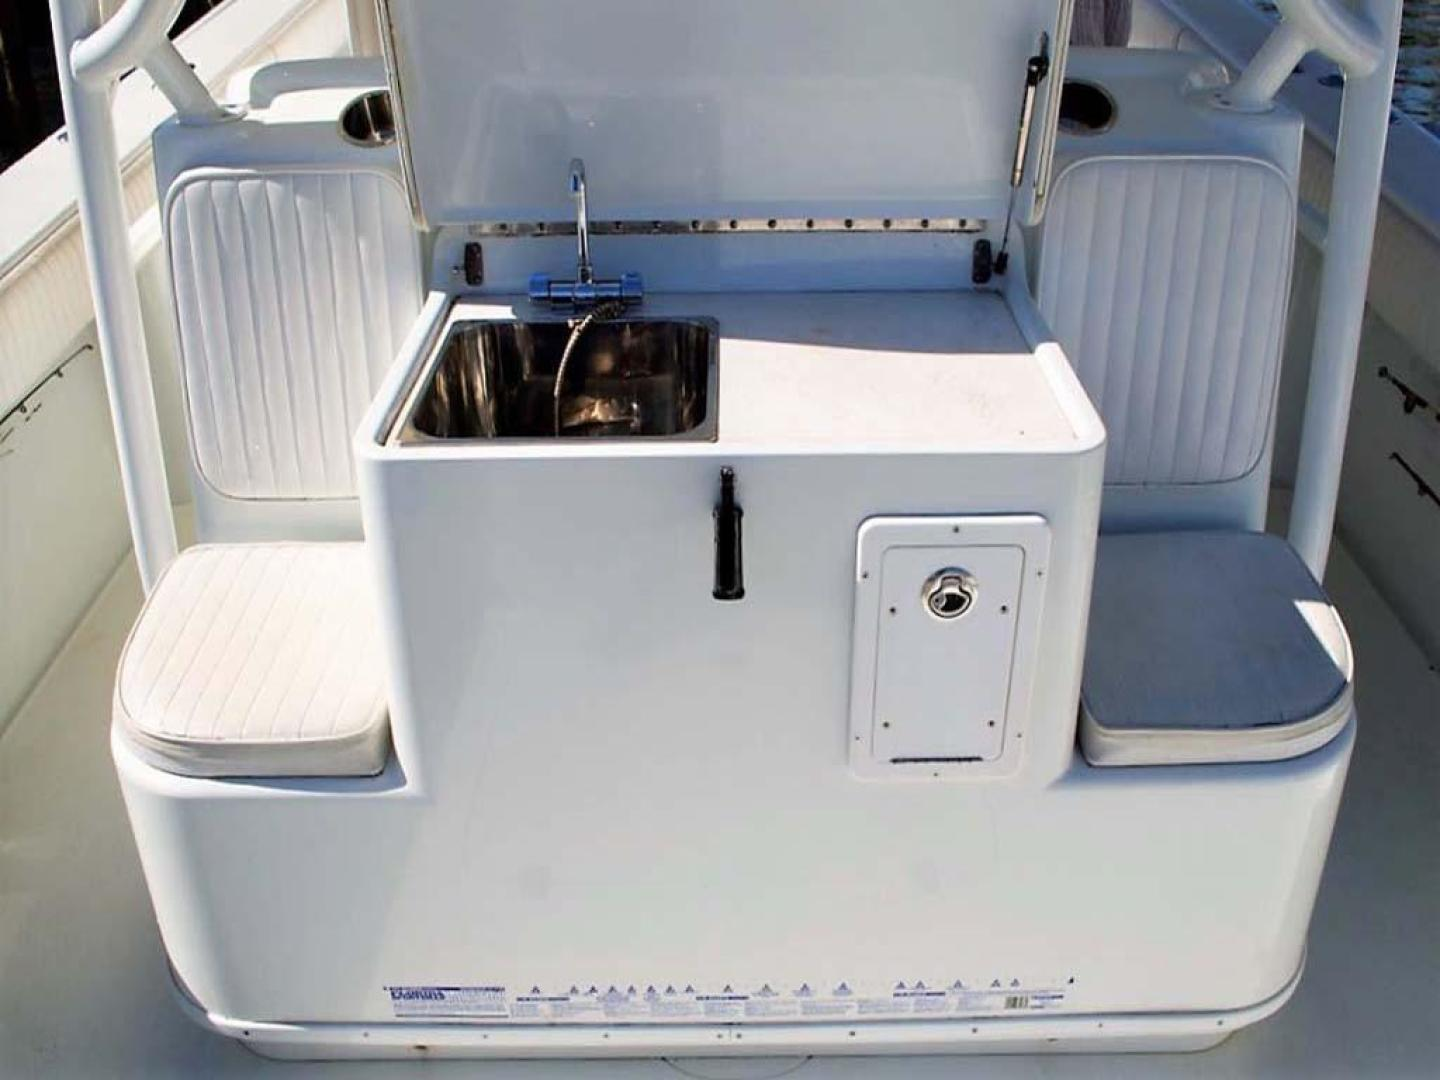 Yellowfin-42-Open-2009-Hard-Charger-Pompano-Florida-United-States-Cockpit-Sink-929772